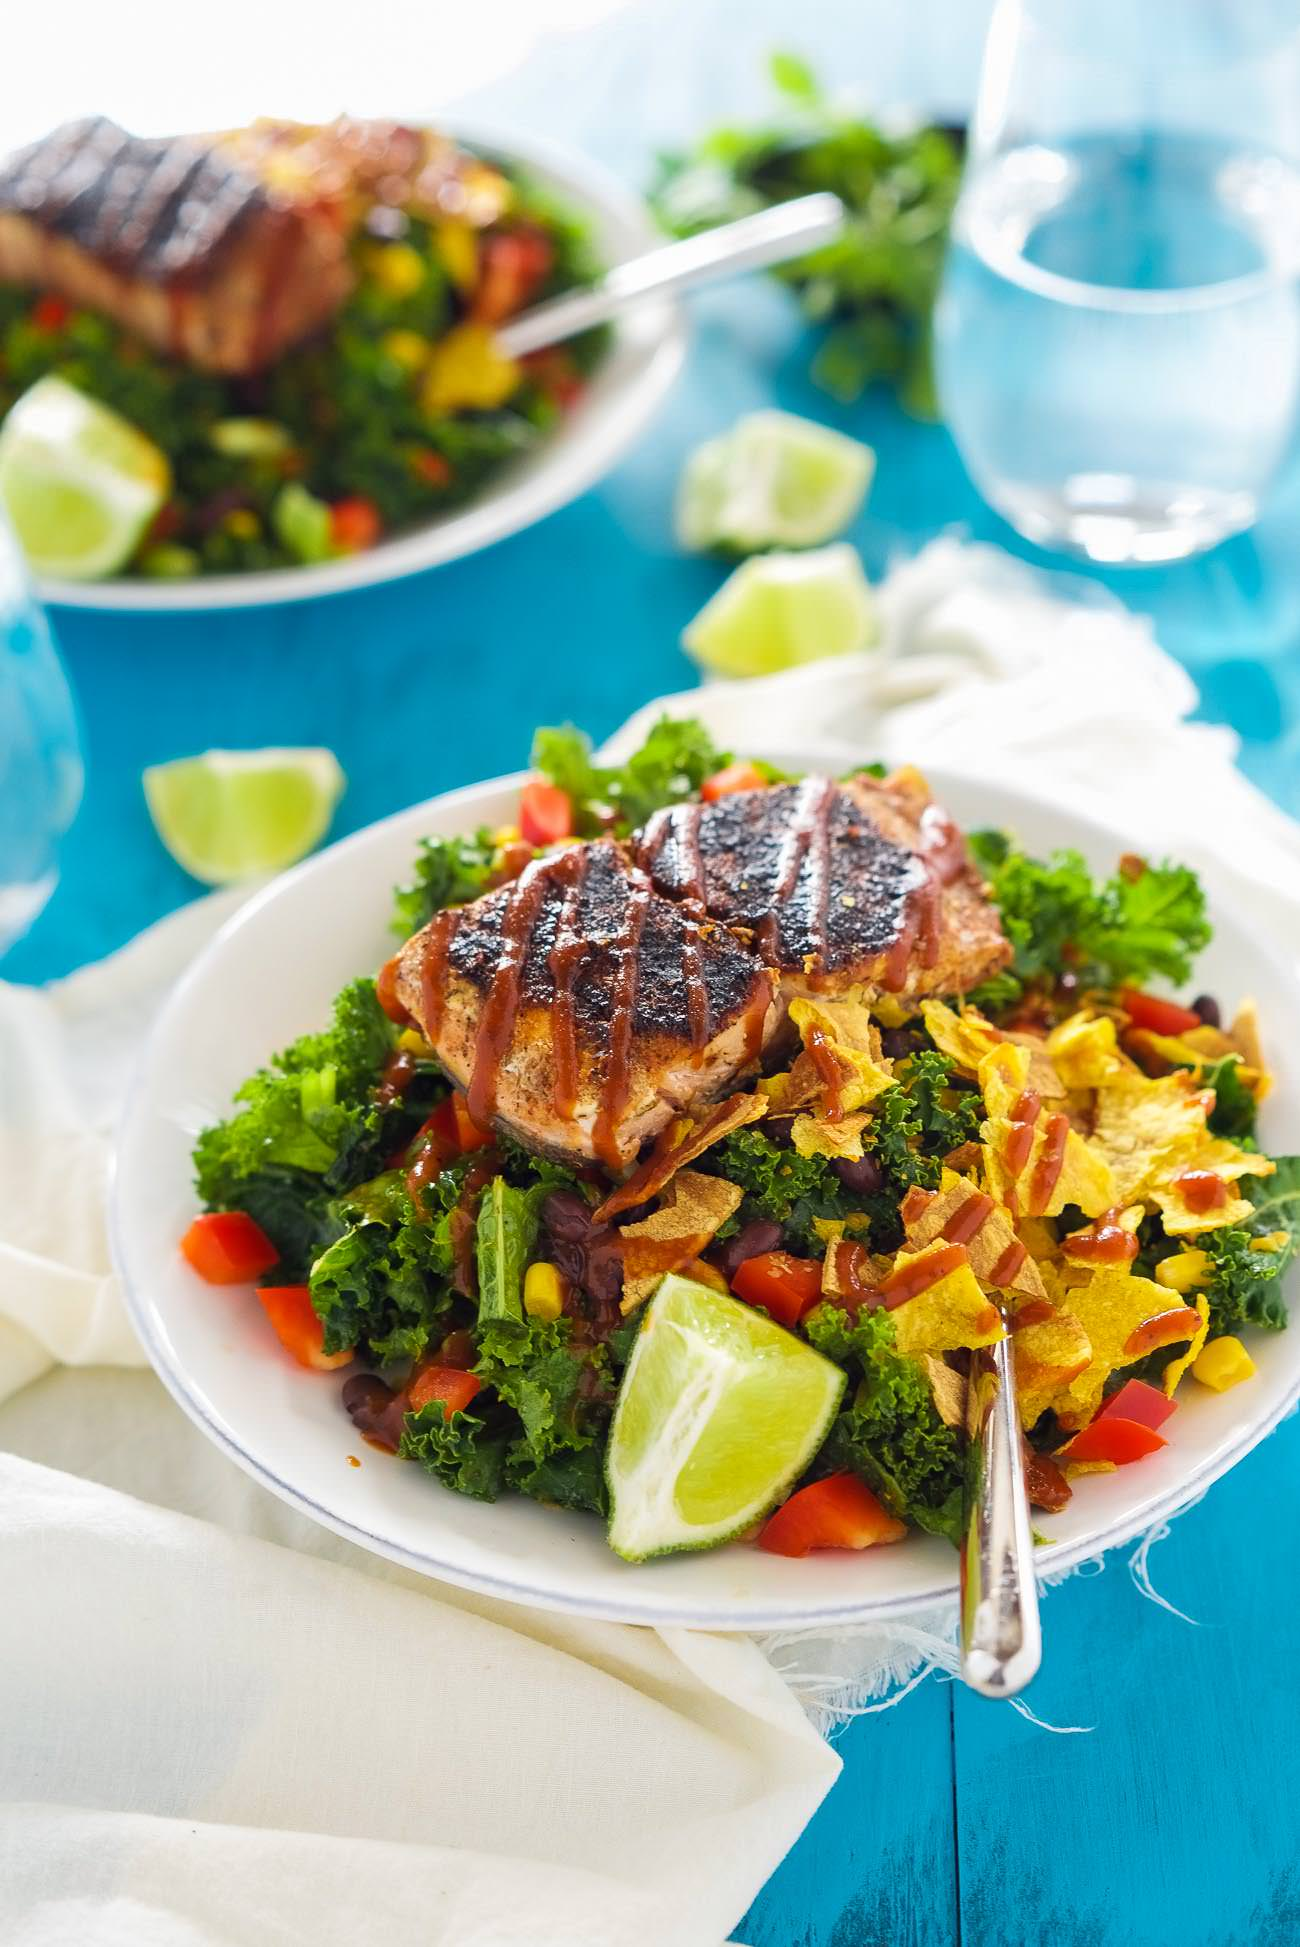 BBQ Salmon Kale Salad is a healthy and updated version of the classic BBQ salad! Filled with bold flavors, crunchy kale, crispy vegetables and all toss in a Honey Chipotle Vinaigrette! One easy to prepare salad you will fall in love with!